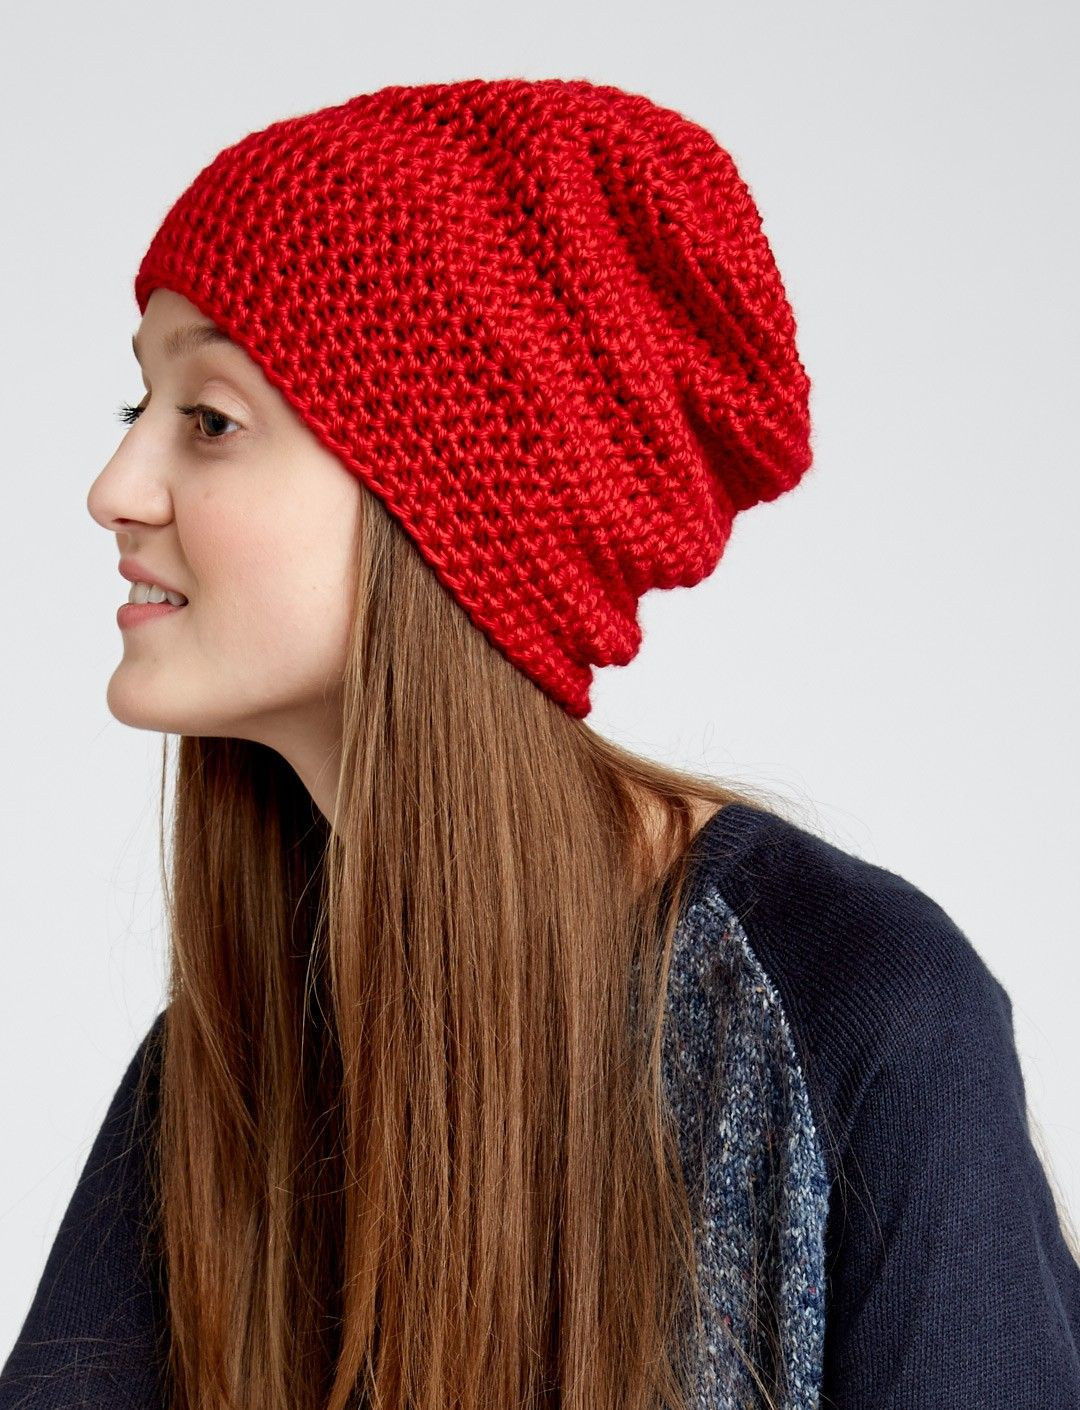 Luxury Free Slouchy Beanie Pattern Intended for Beginners and It Beanie Hat Crochet Pattern Of Lovely 44 Pics Beanie Hat Crochet Pattern